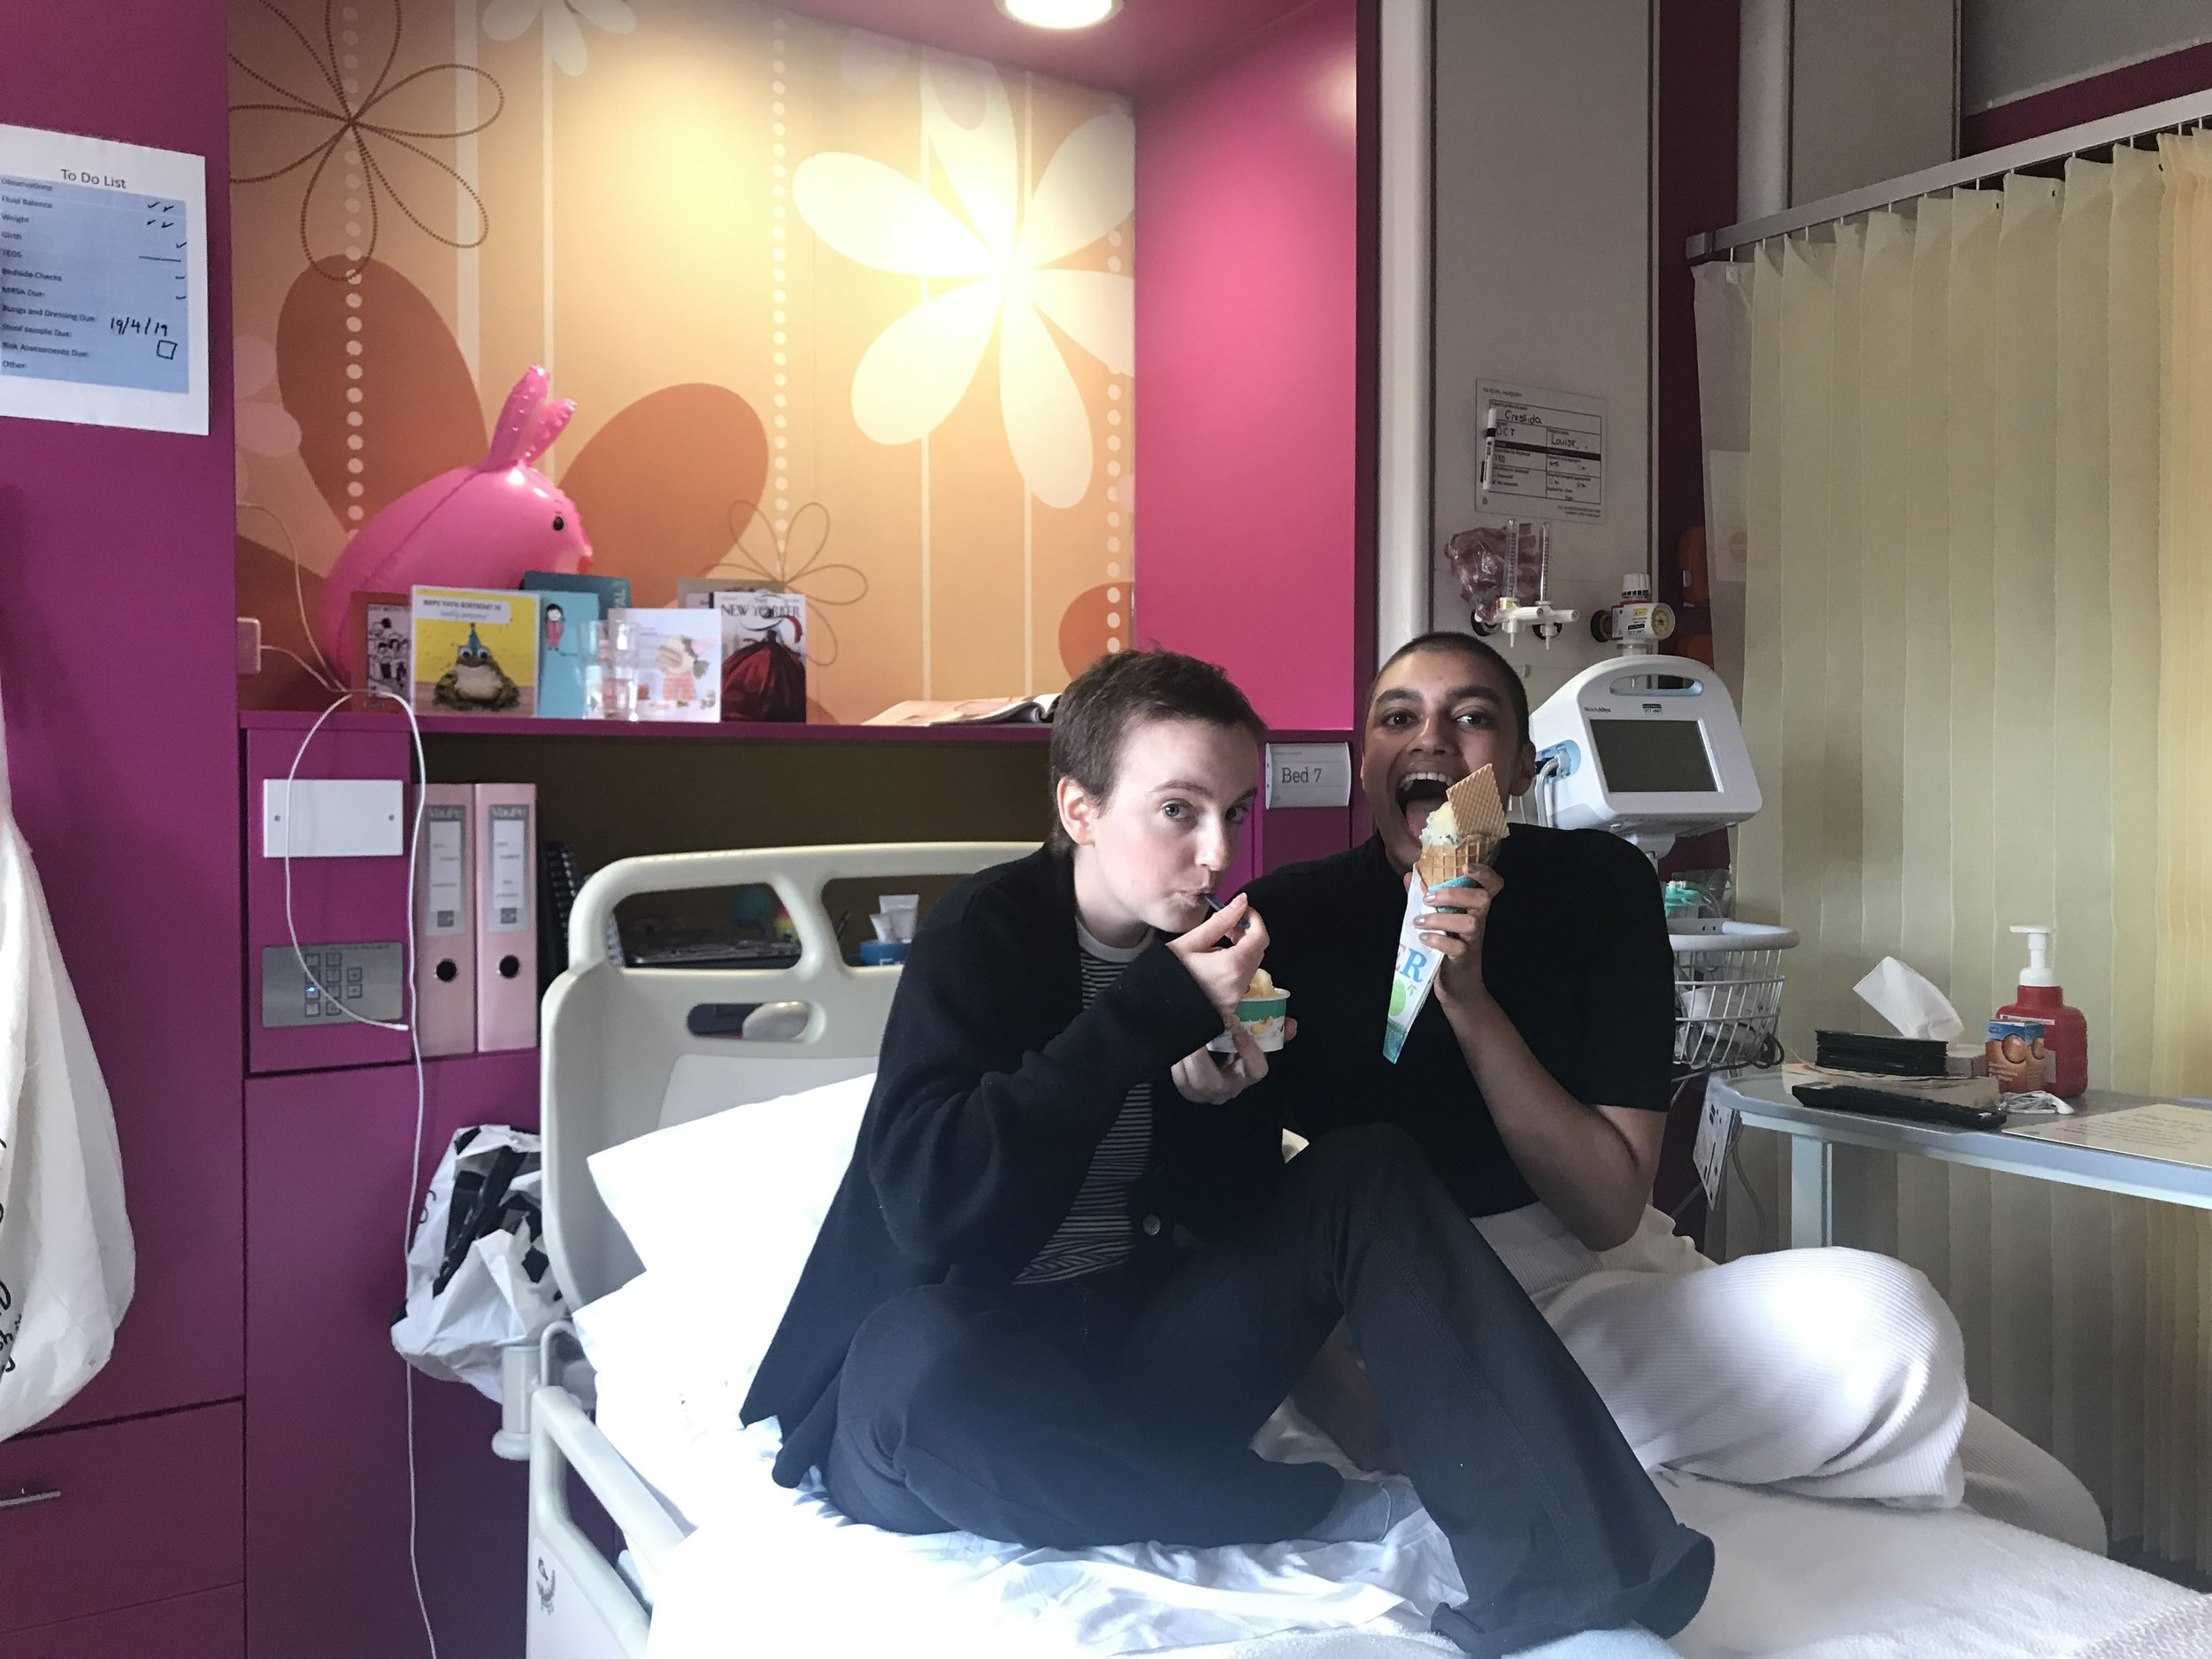 Image courtesy of Ameera | Ameera and Cressi celebrating birthdays and remission days